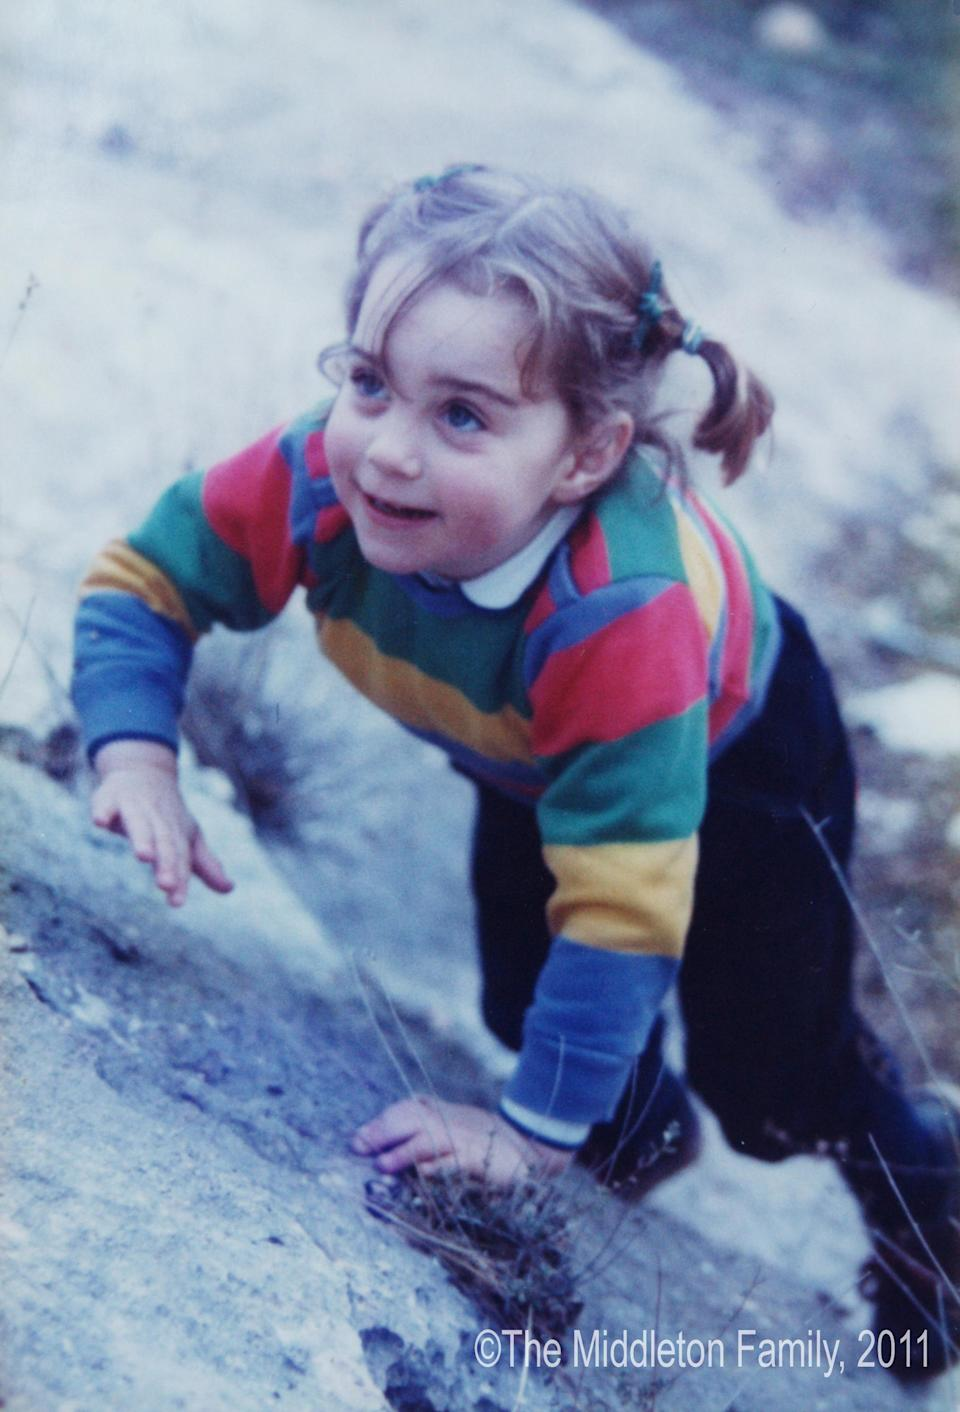 She showed an early love for exploring and activity - here aged three-and-a-half on holiday in the Lake District. We love those pigtails that mean she is ready for action. (The Middleton Family)